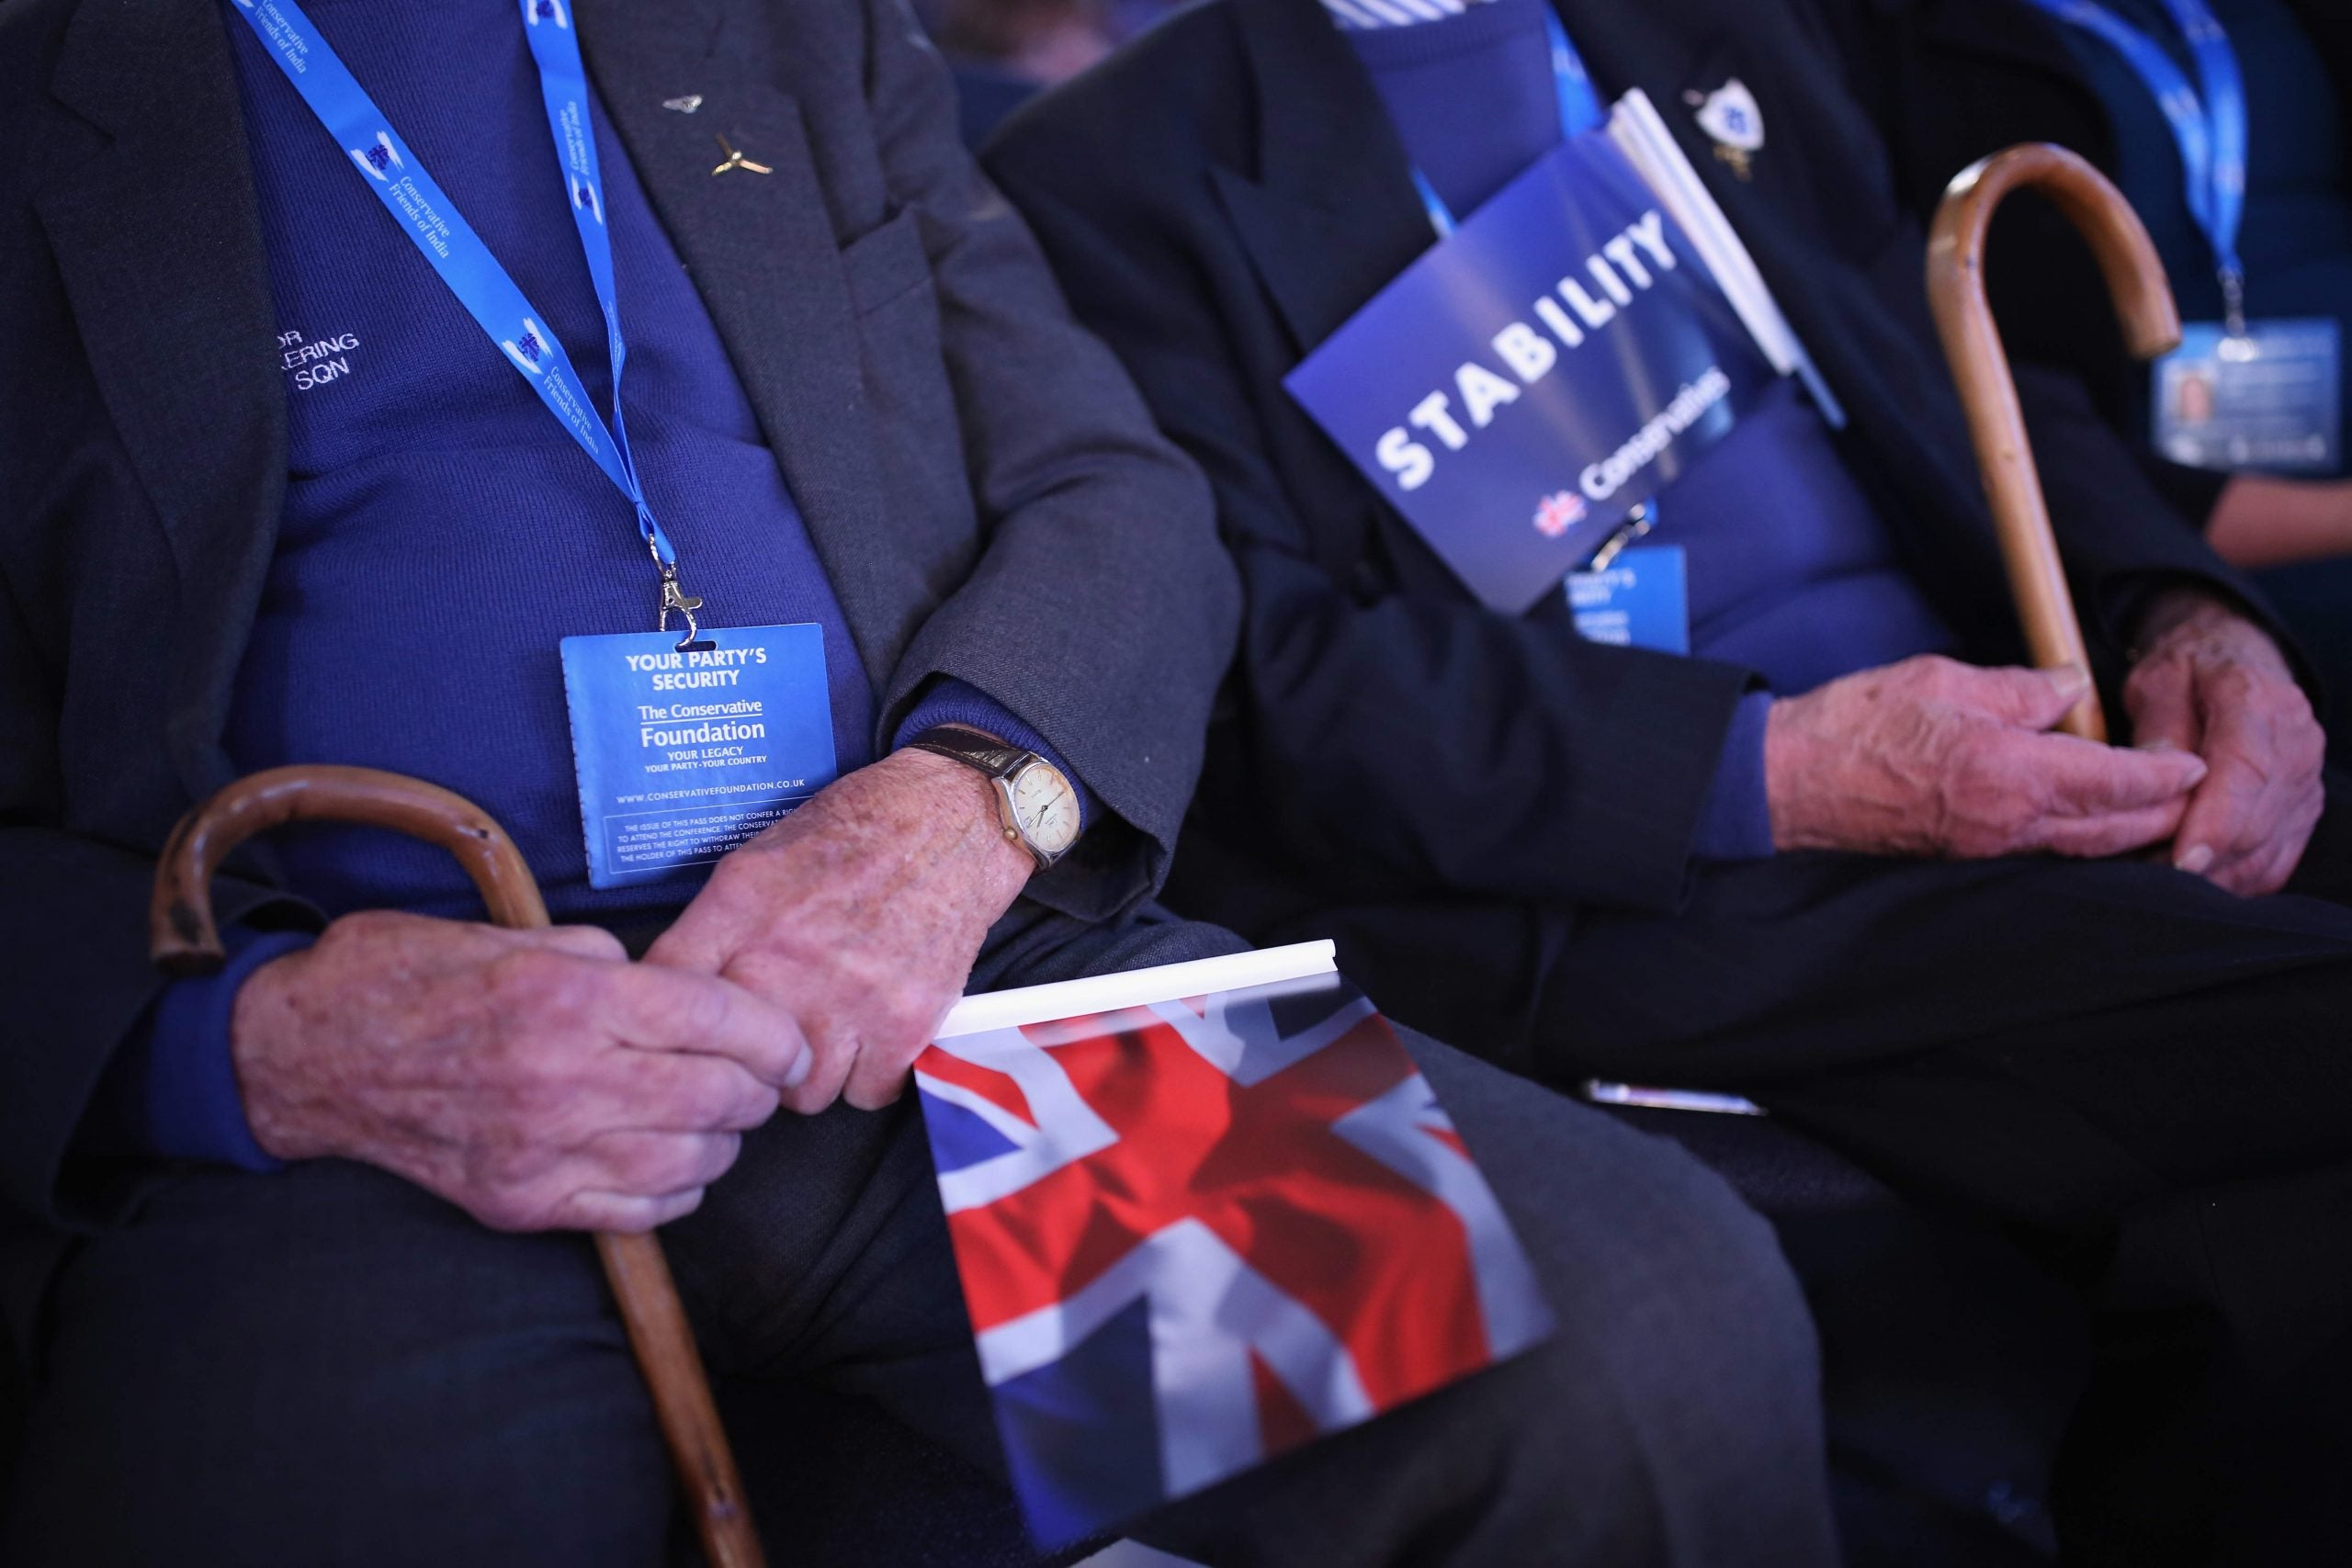 It's not just workers that the Conservatives are letting down